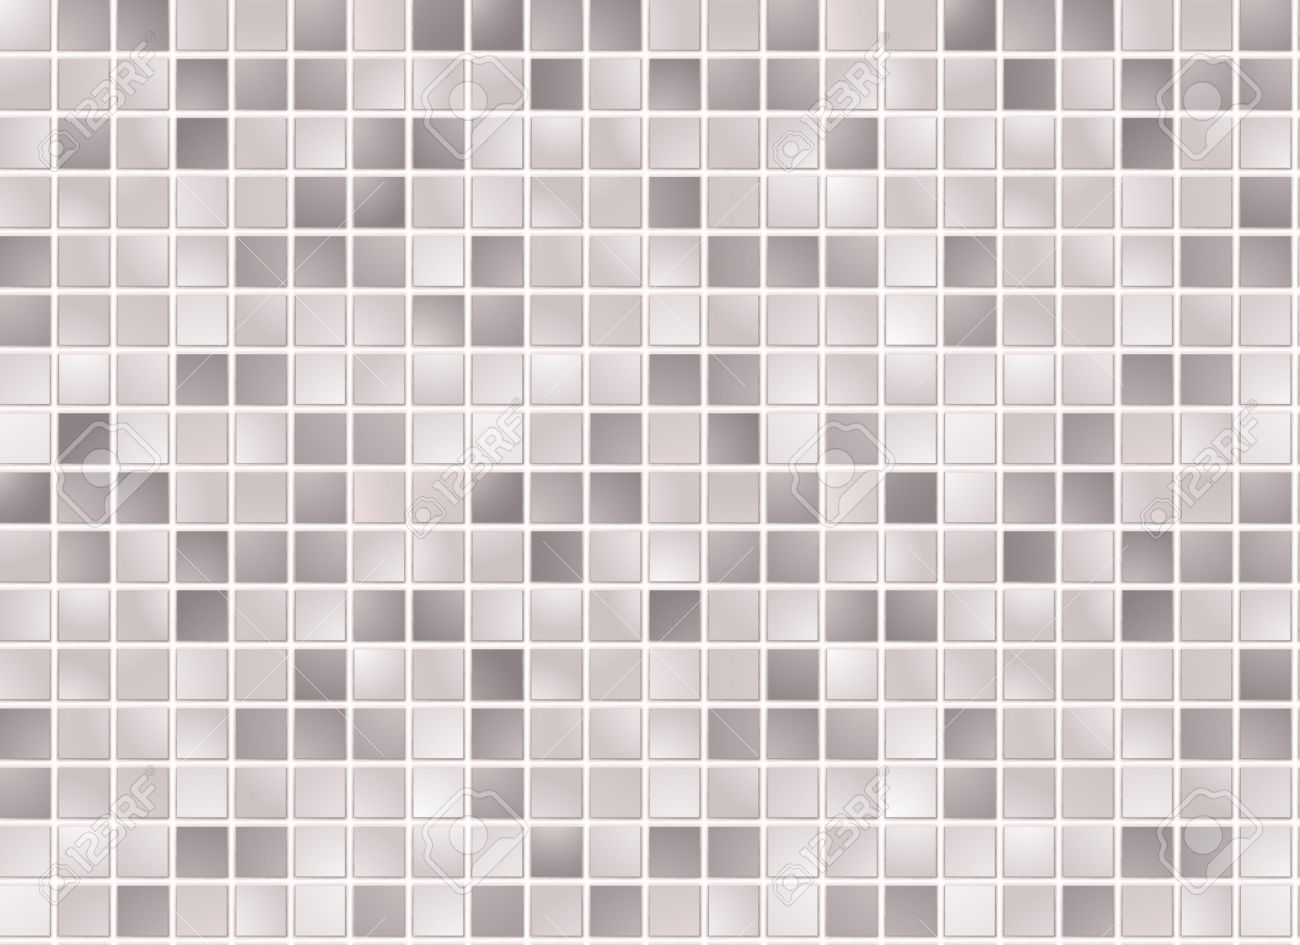 Kitchen Tile Pattern New Seamless Grey Square Tiles Pattern Royalty Free Cliparts Vectors Design Ideas